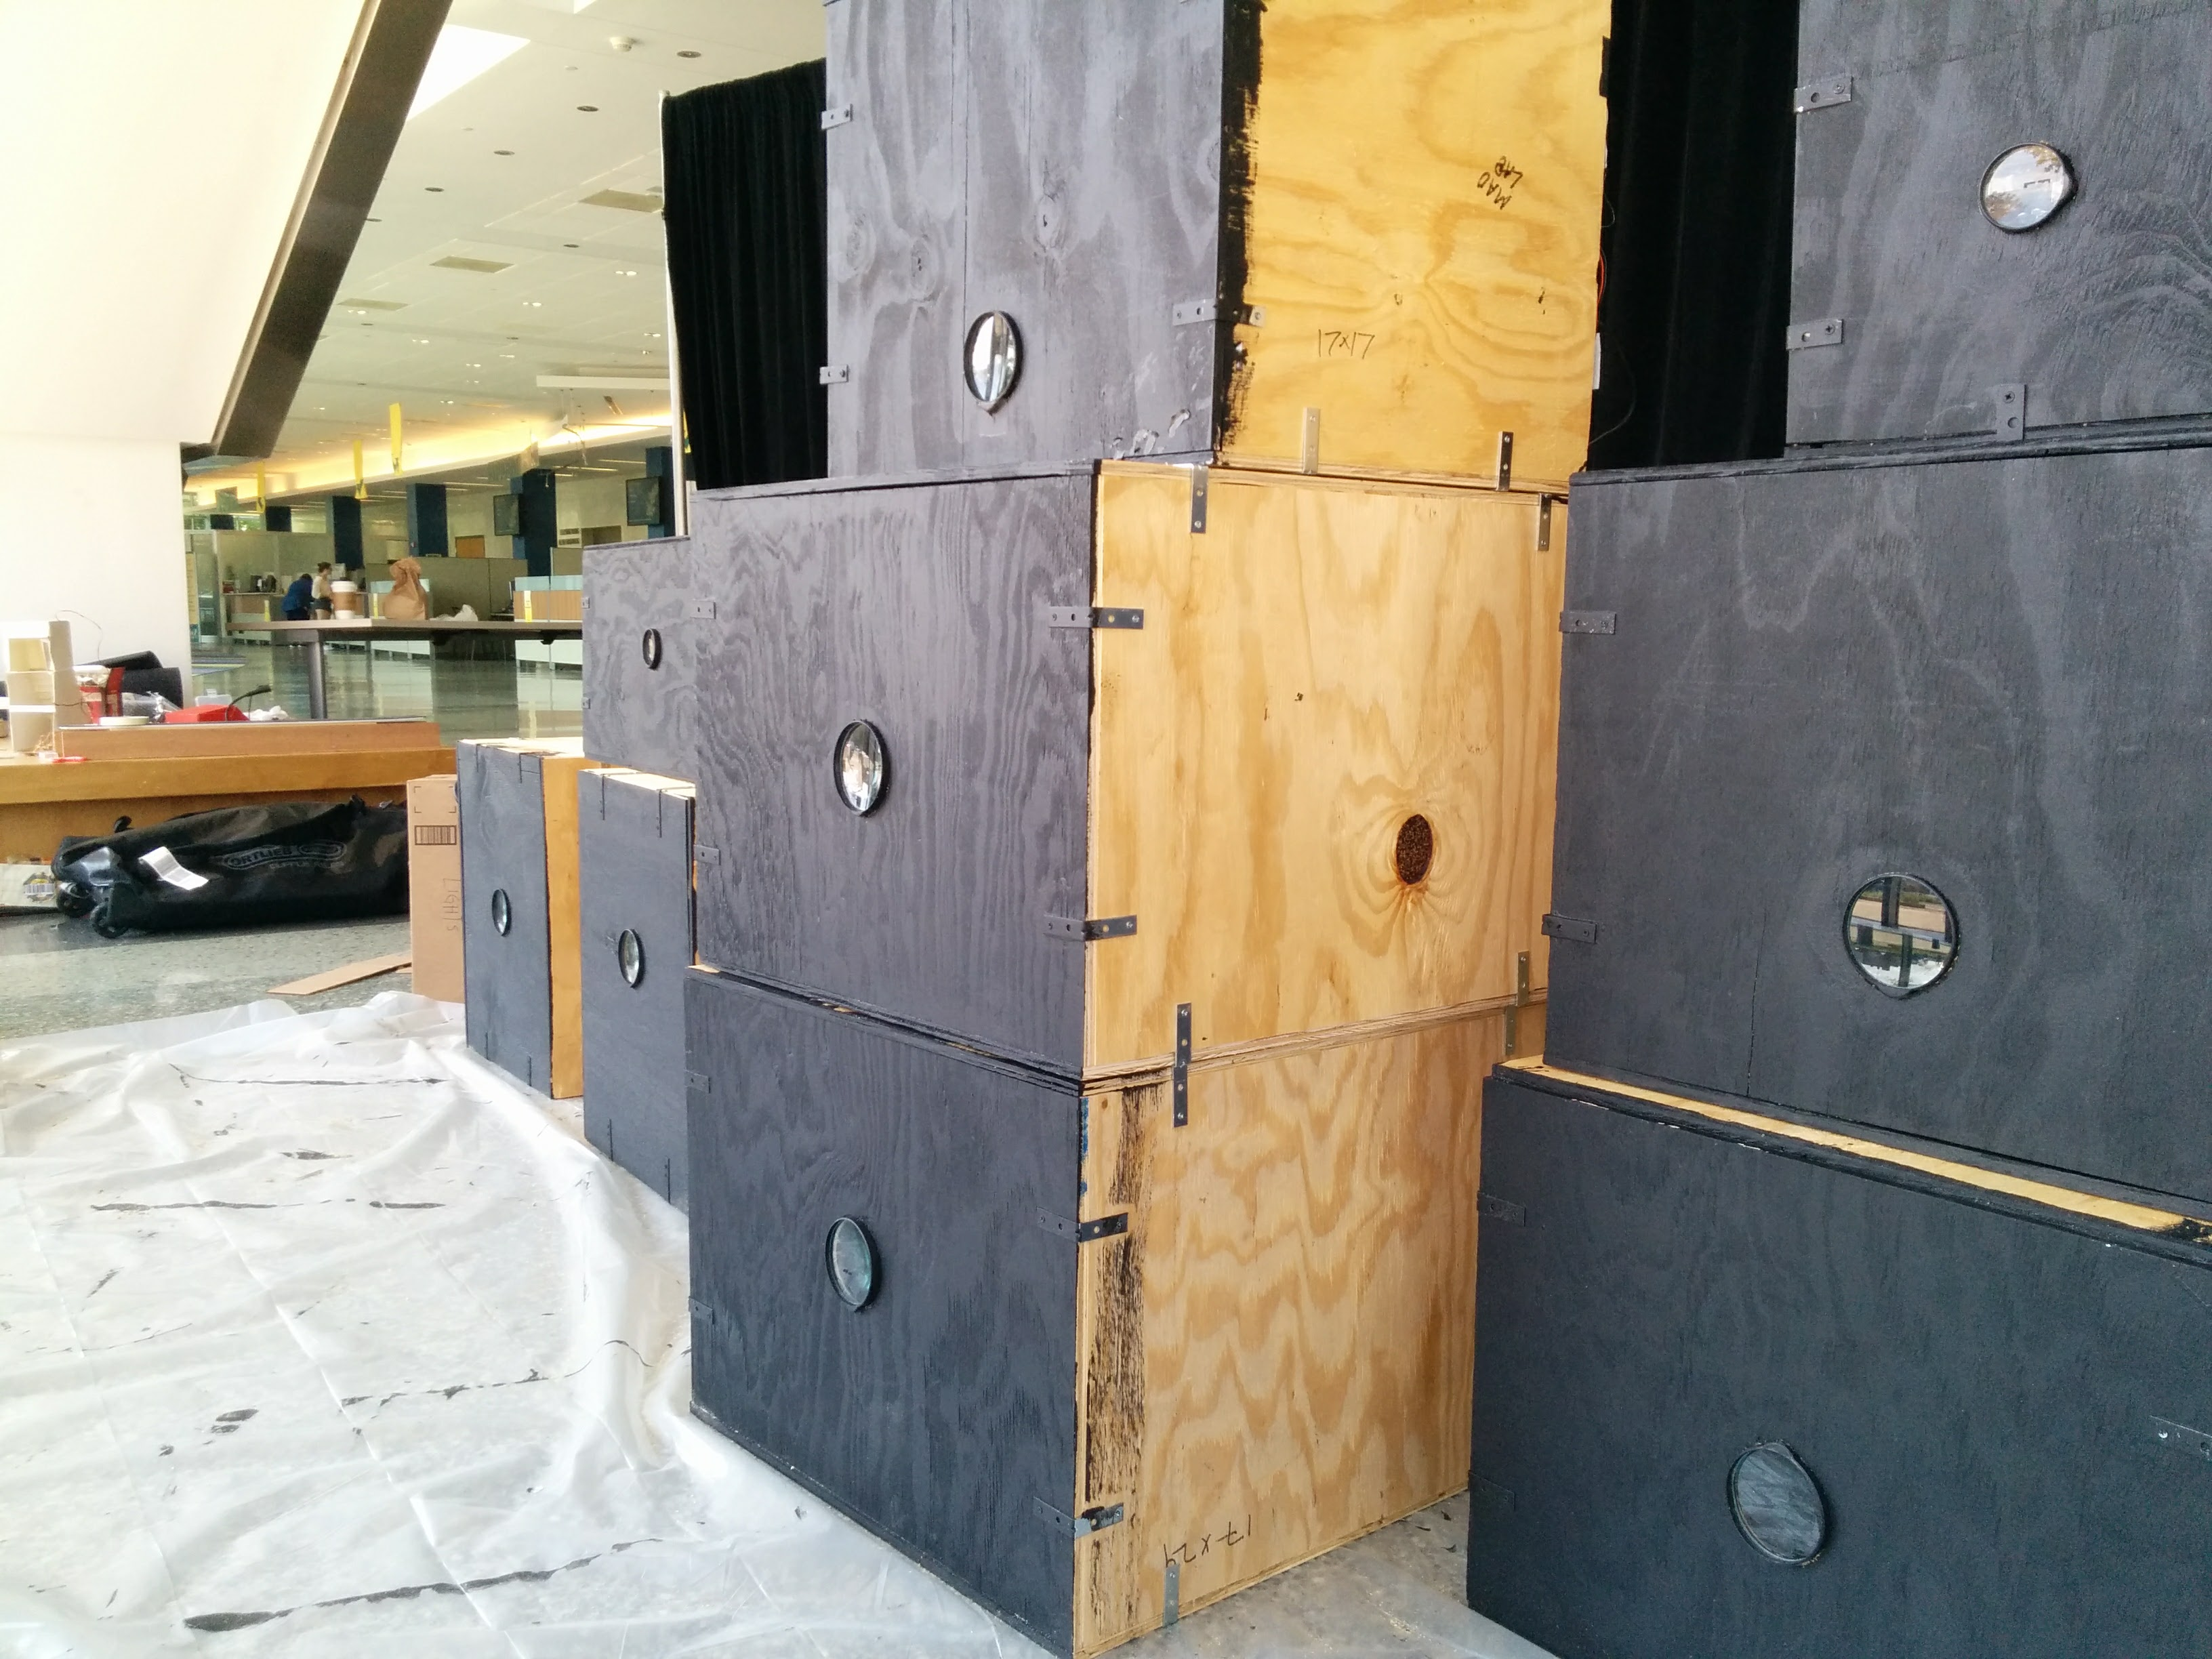 setup of the installation - lupe hole boxes